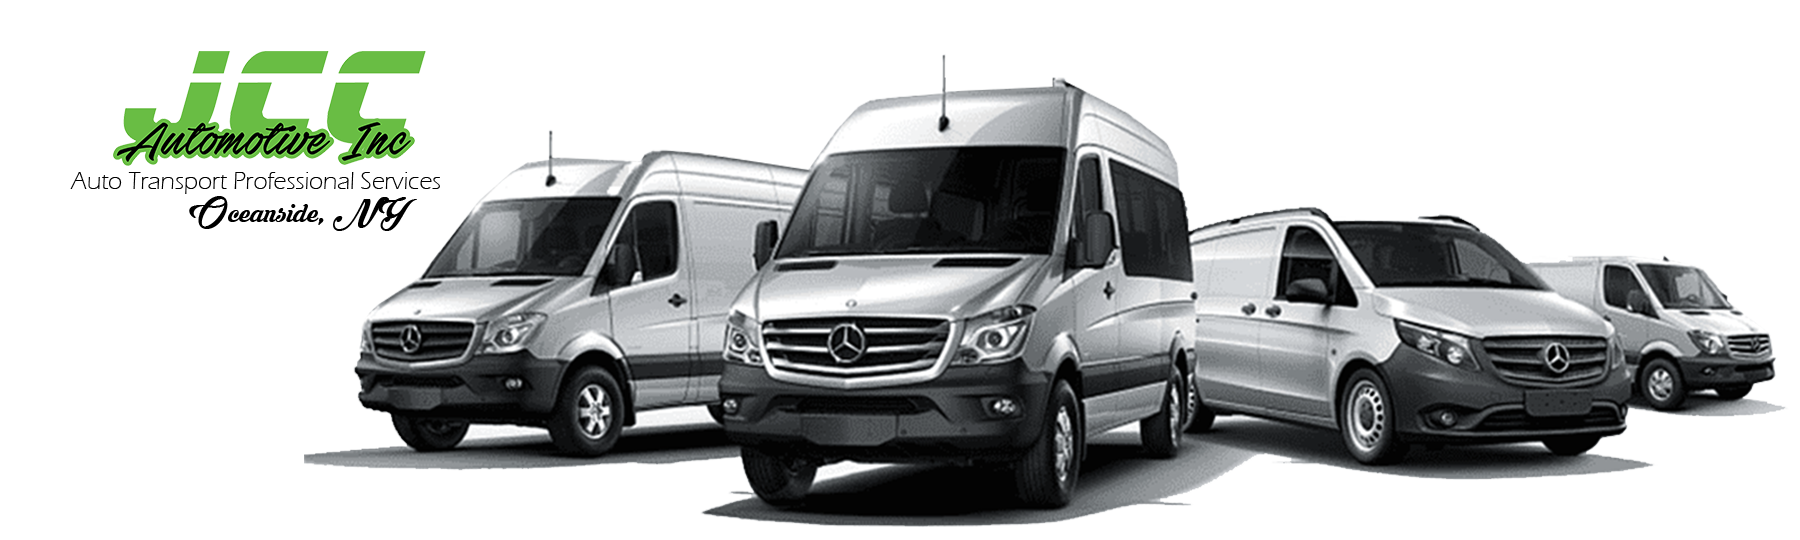 JCC Automotive Inc. | Company Fleet Transport Professional Services, 3 New Street, Oceanside, Long Island, NY, 11572 | PHONE: 516-287-4189, FAX: 516-599-8206